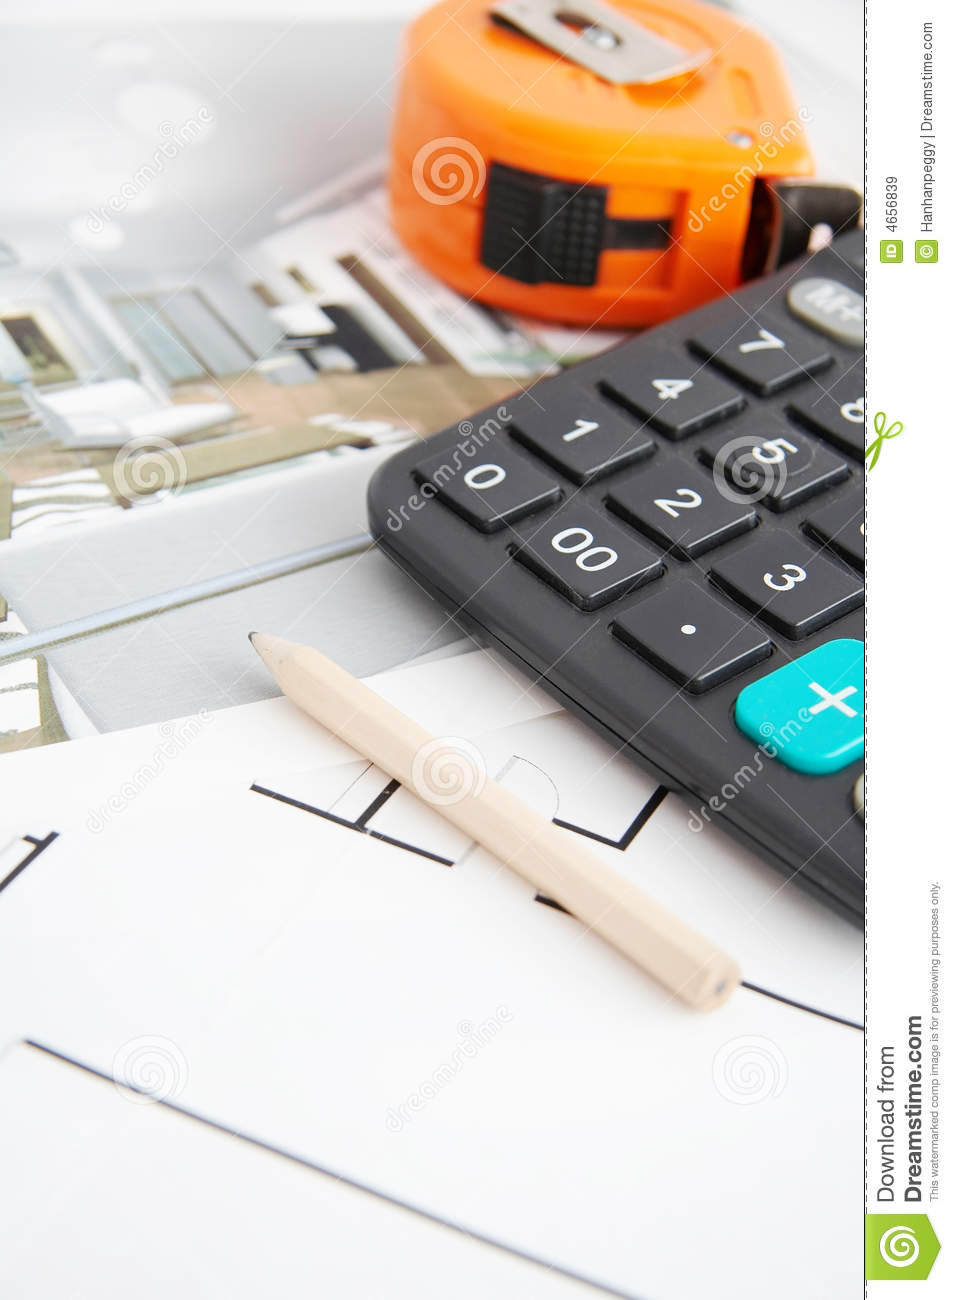 Floor plan and tools royalty free stock images image for Carpet planner tool